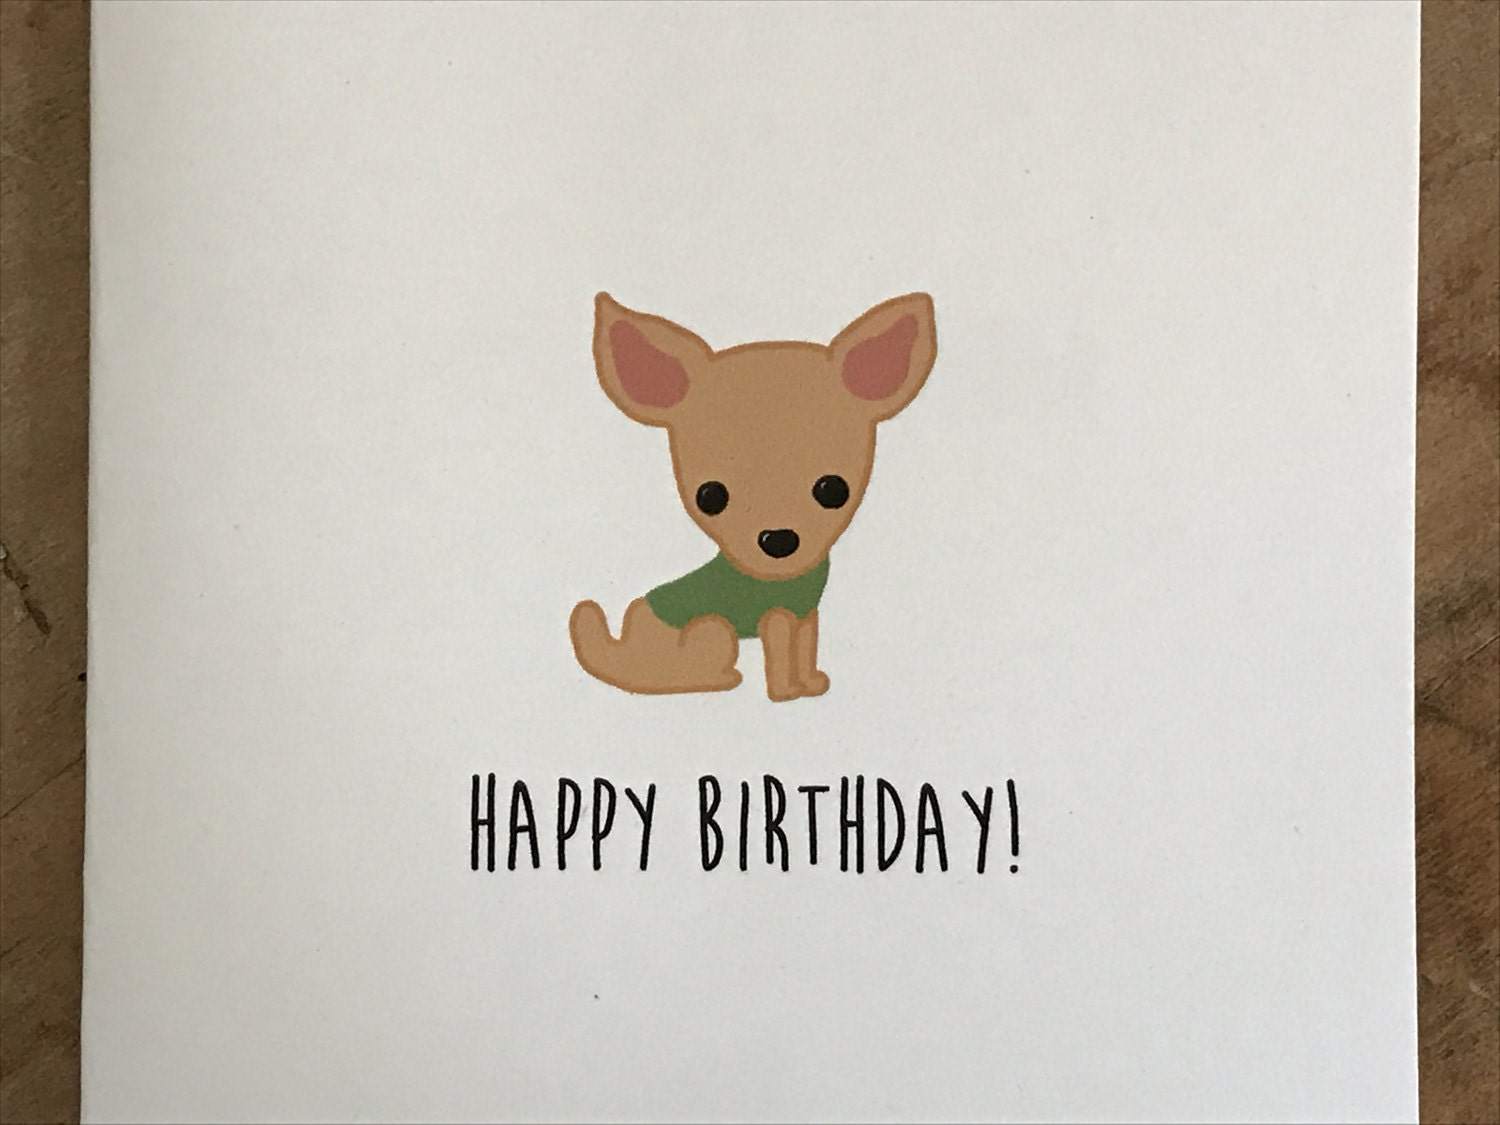 Chihuahua birthday card birthday card from the dog birthday card chihuahua birthday card birthday card from the dog birthday card from the chihuahua made on recycled paper comes with envelope and seal bookmarktalkfo Images